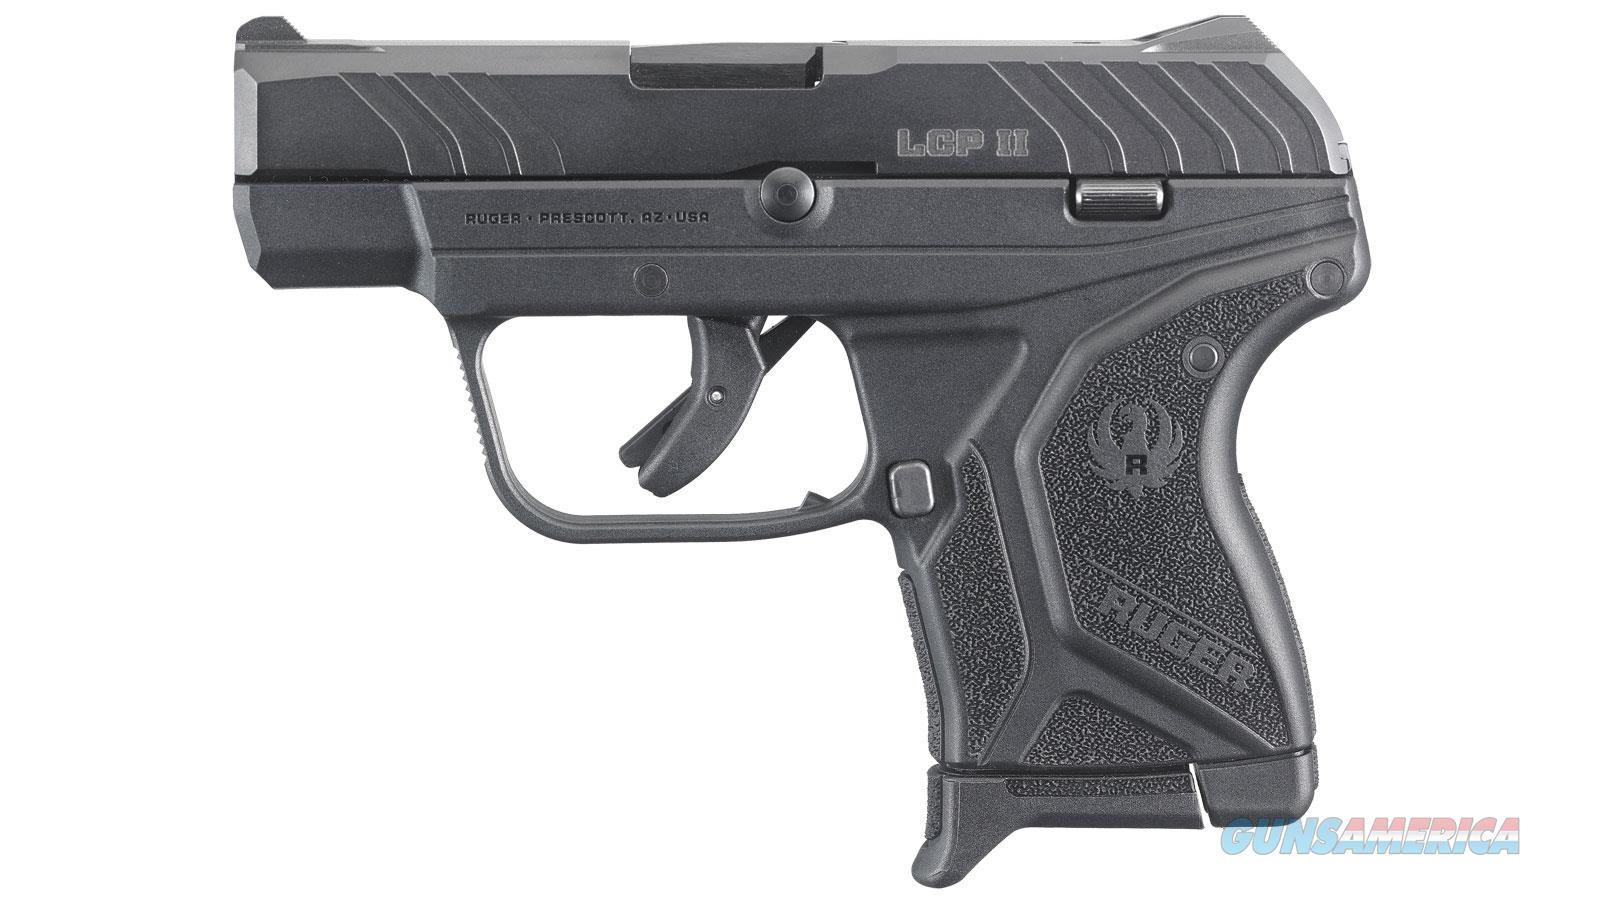 Ruger LCP II Pistol  Guns > Pistols > Ruger Semi-Auto Pistols > LCP